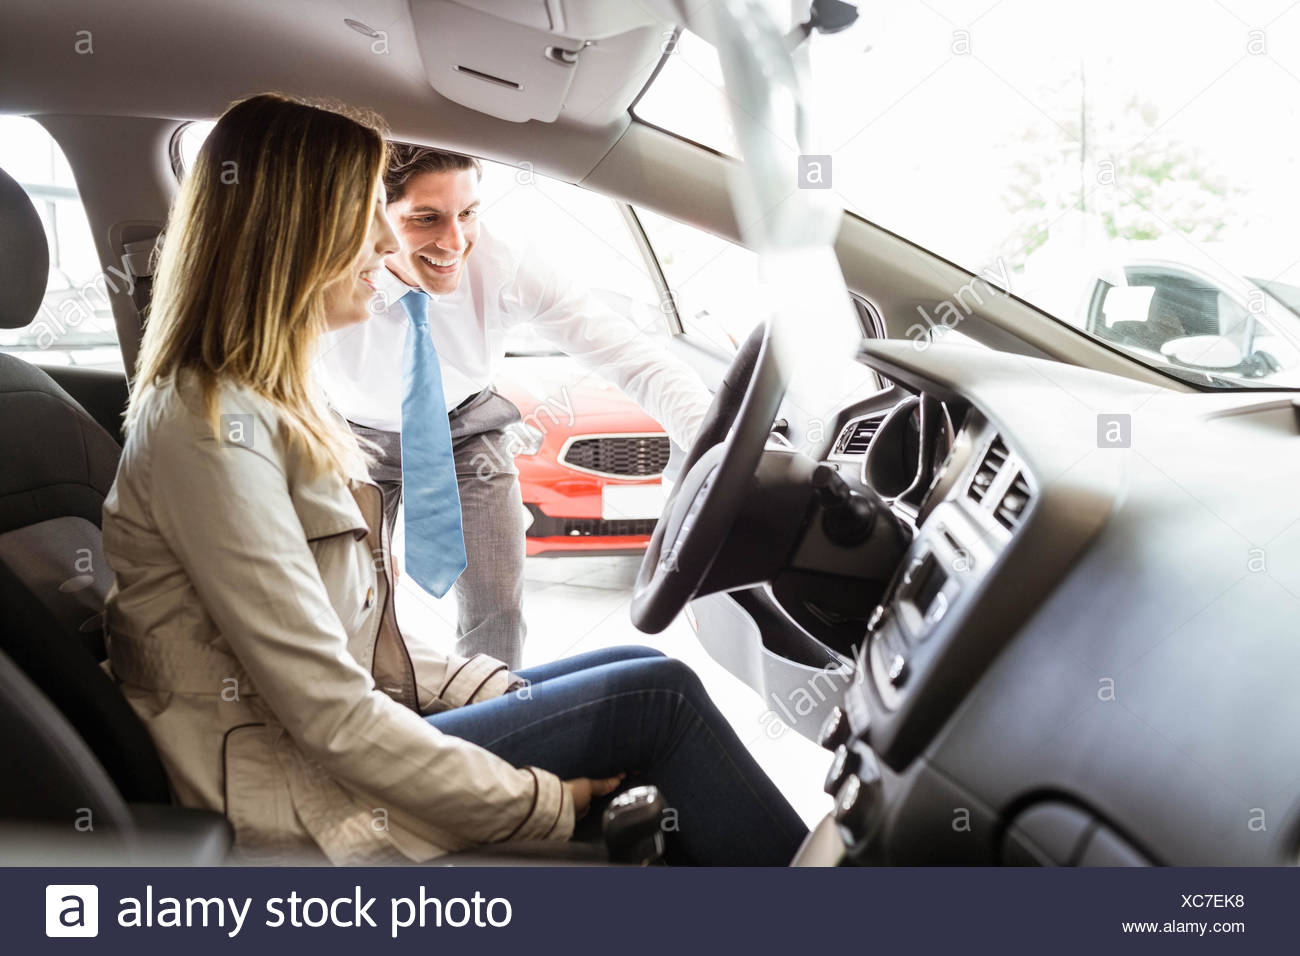 Salesman showing things to a customer - Stock Image